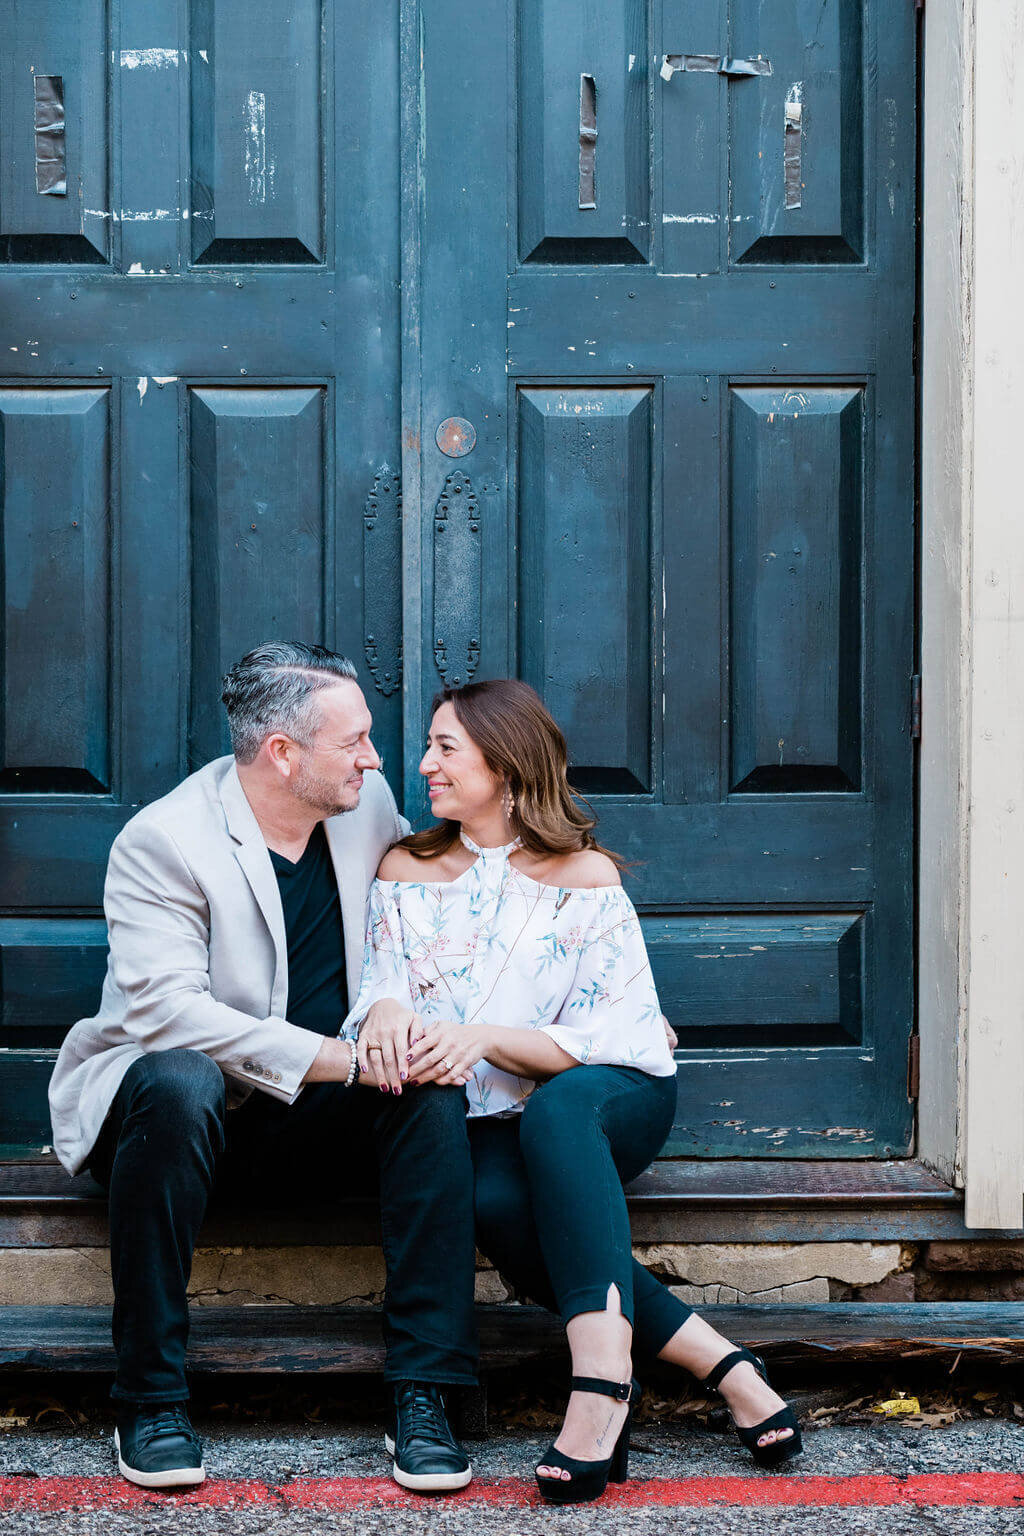 Engagement session in Dallas Fort Worth Texas